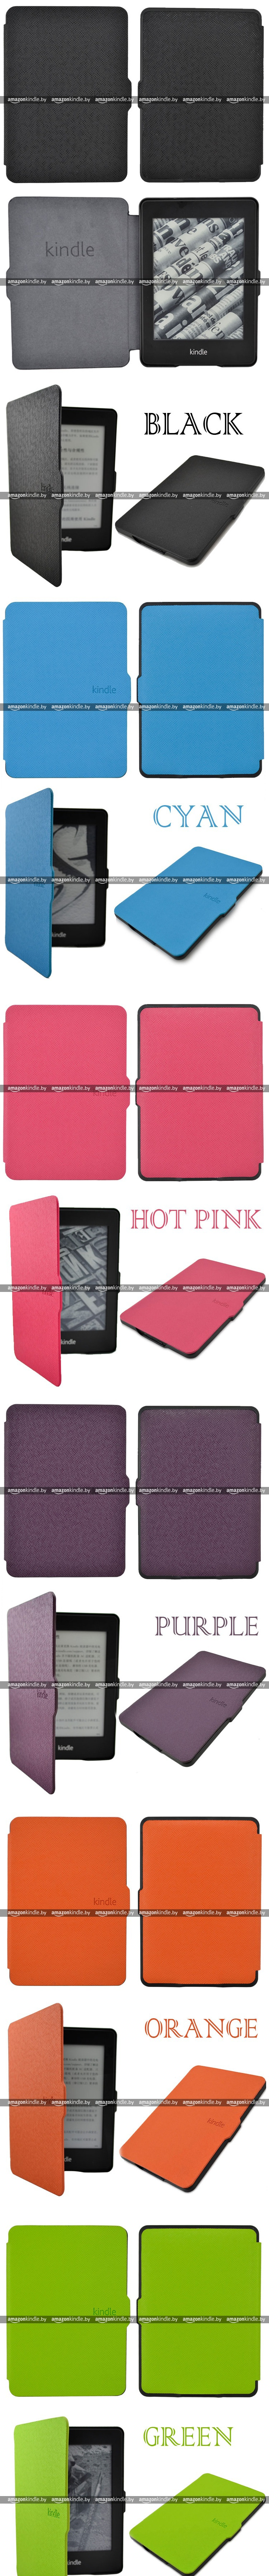 laser covar kindle paperwhite slim